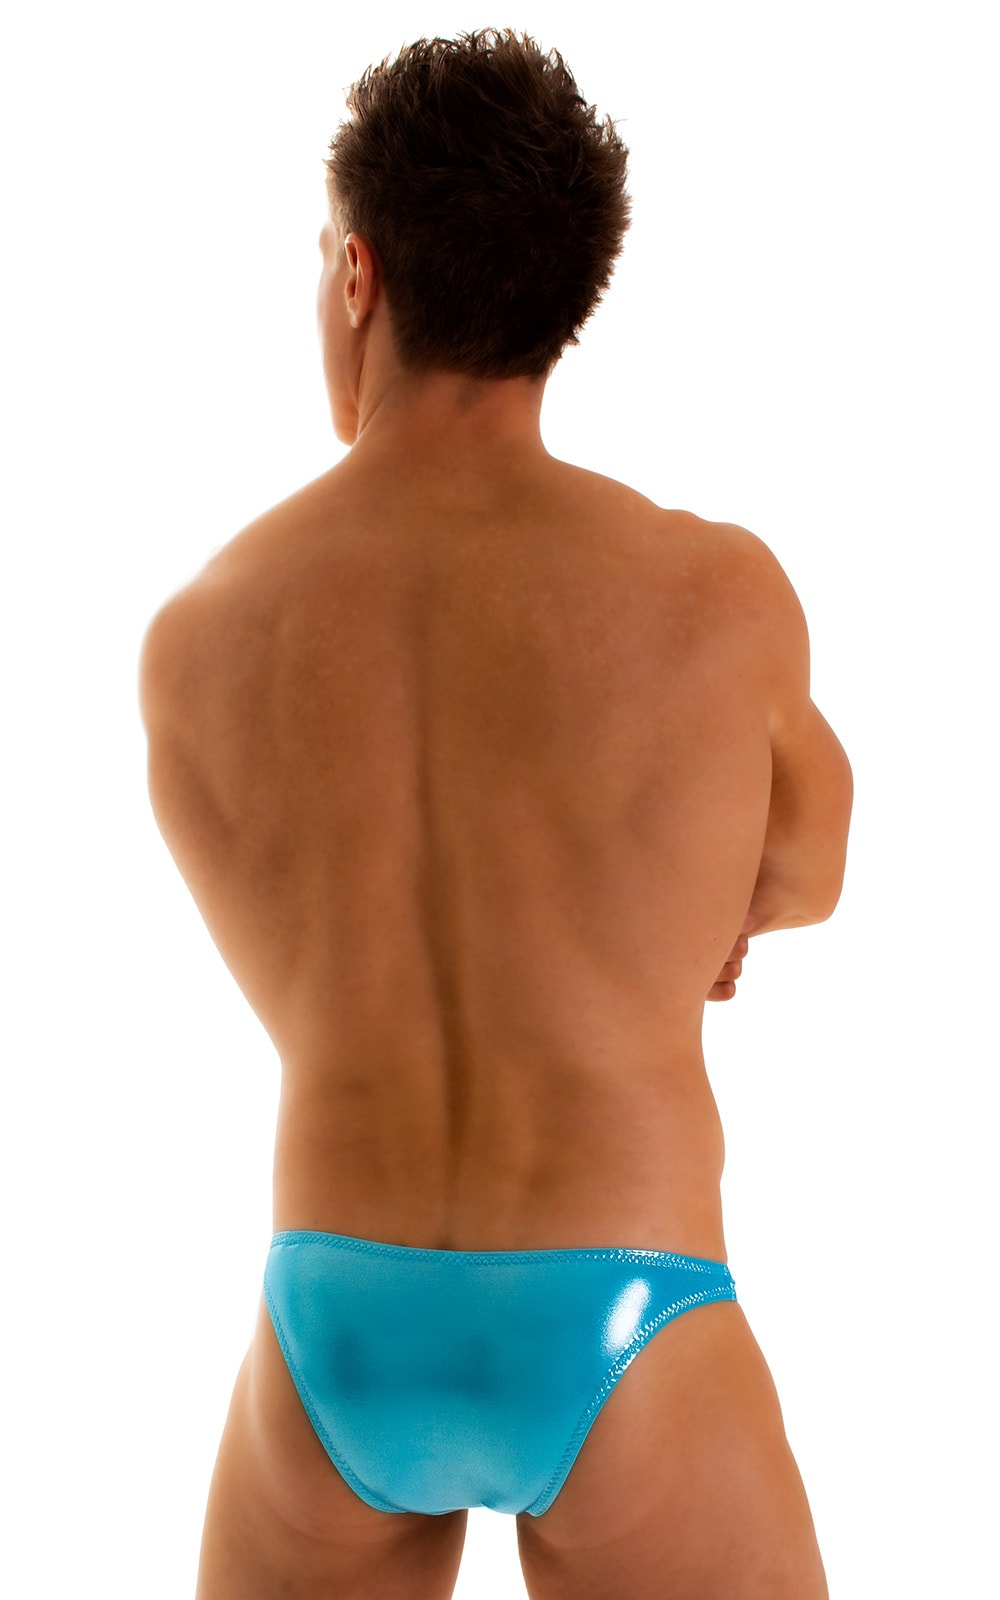 Enhancing Pouch Swim Brief in Ice Karma Turquoise Shimmer 2